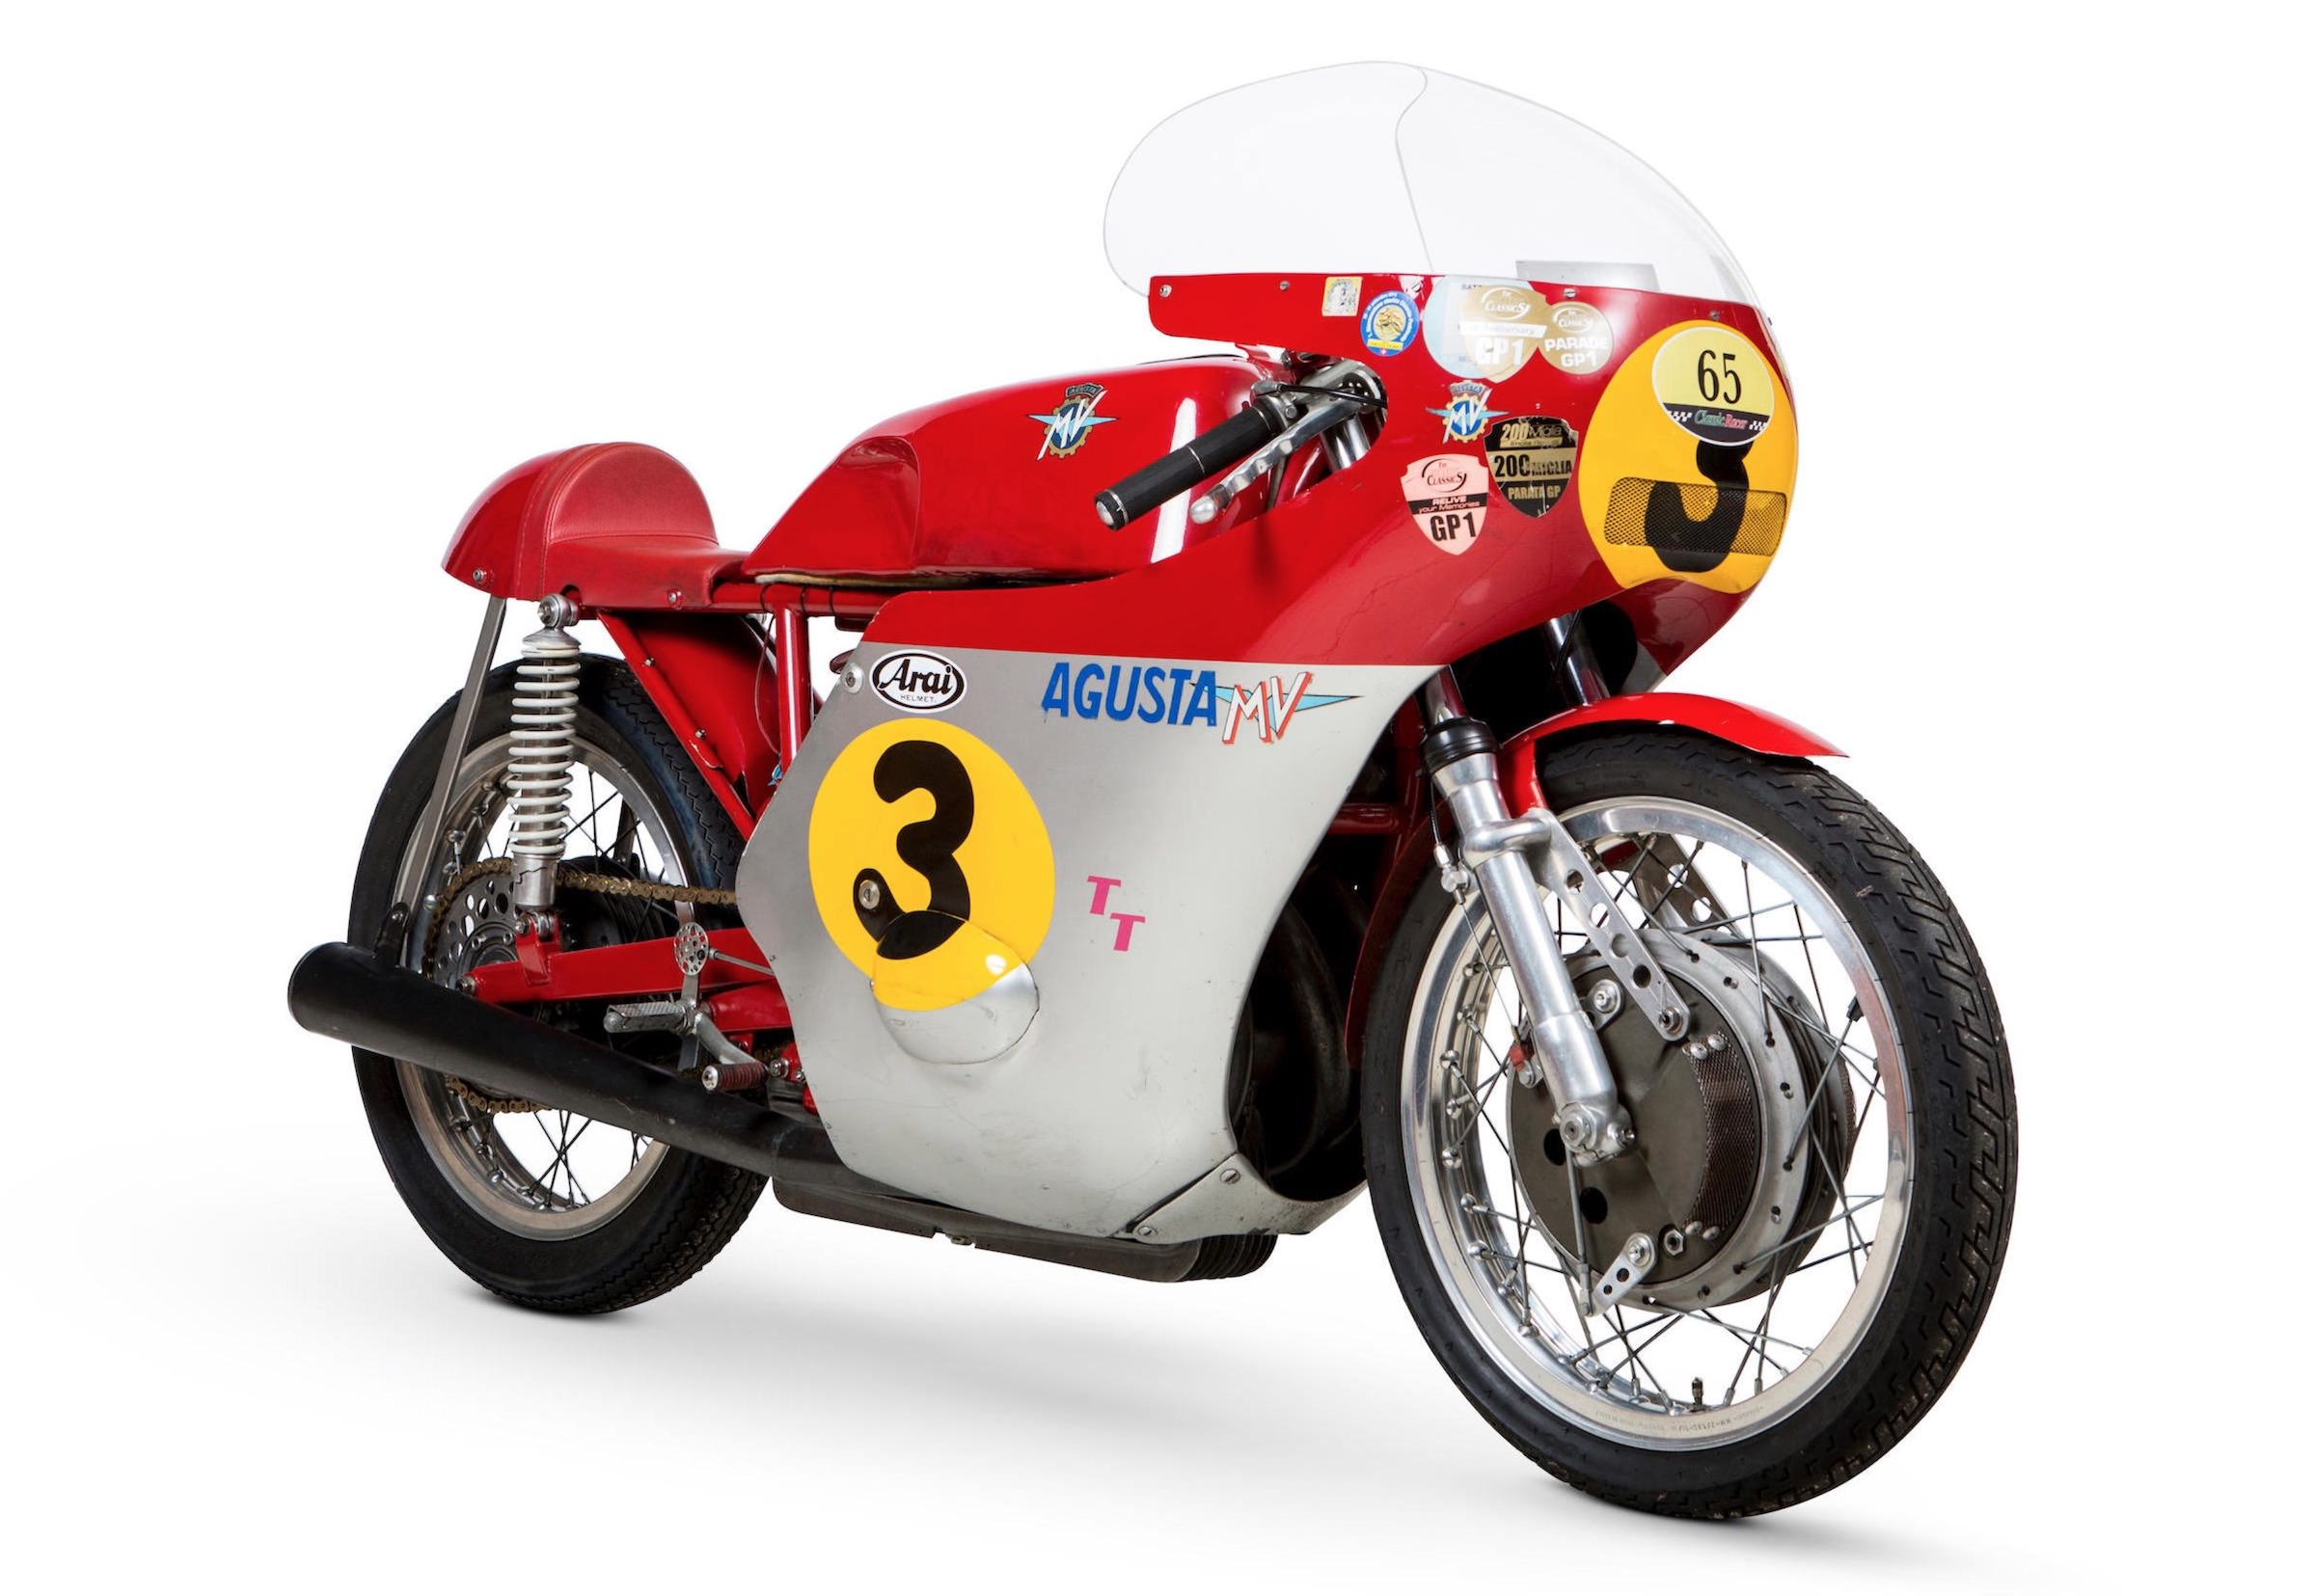 MV-Agusta-500cc-Three-Cylinder-Main